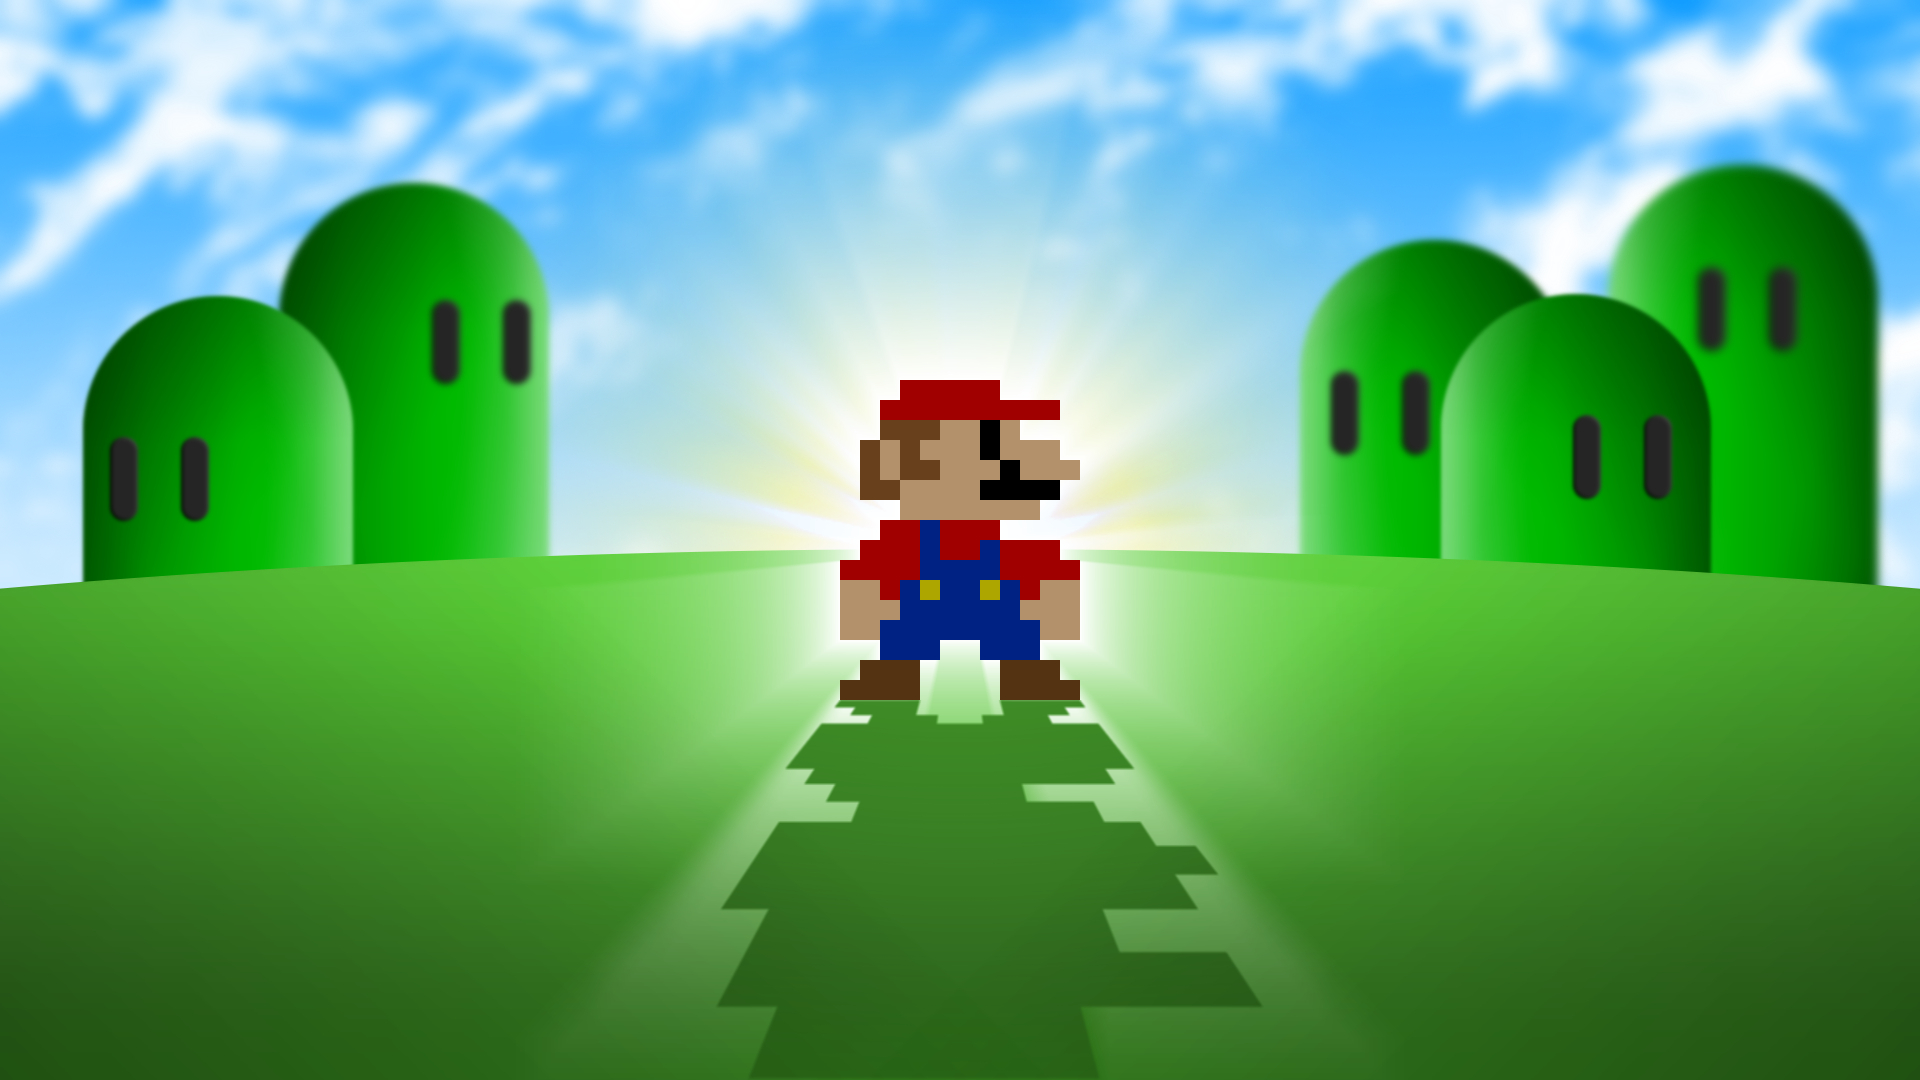 Super-mario-bros-pixelated-backgrounds